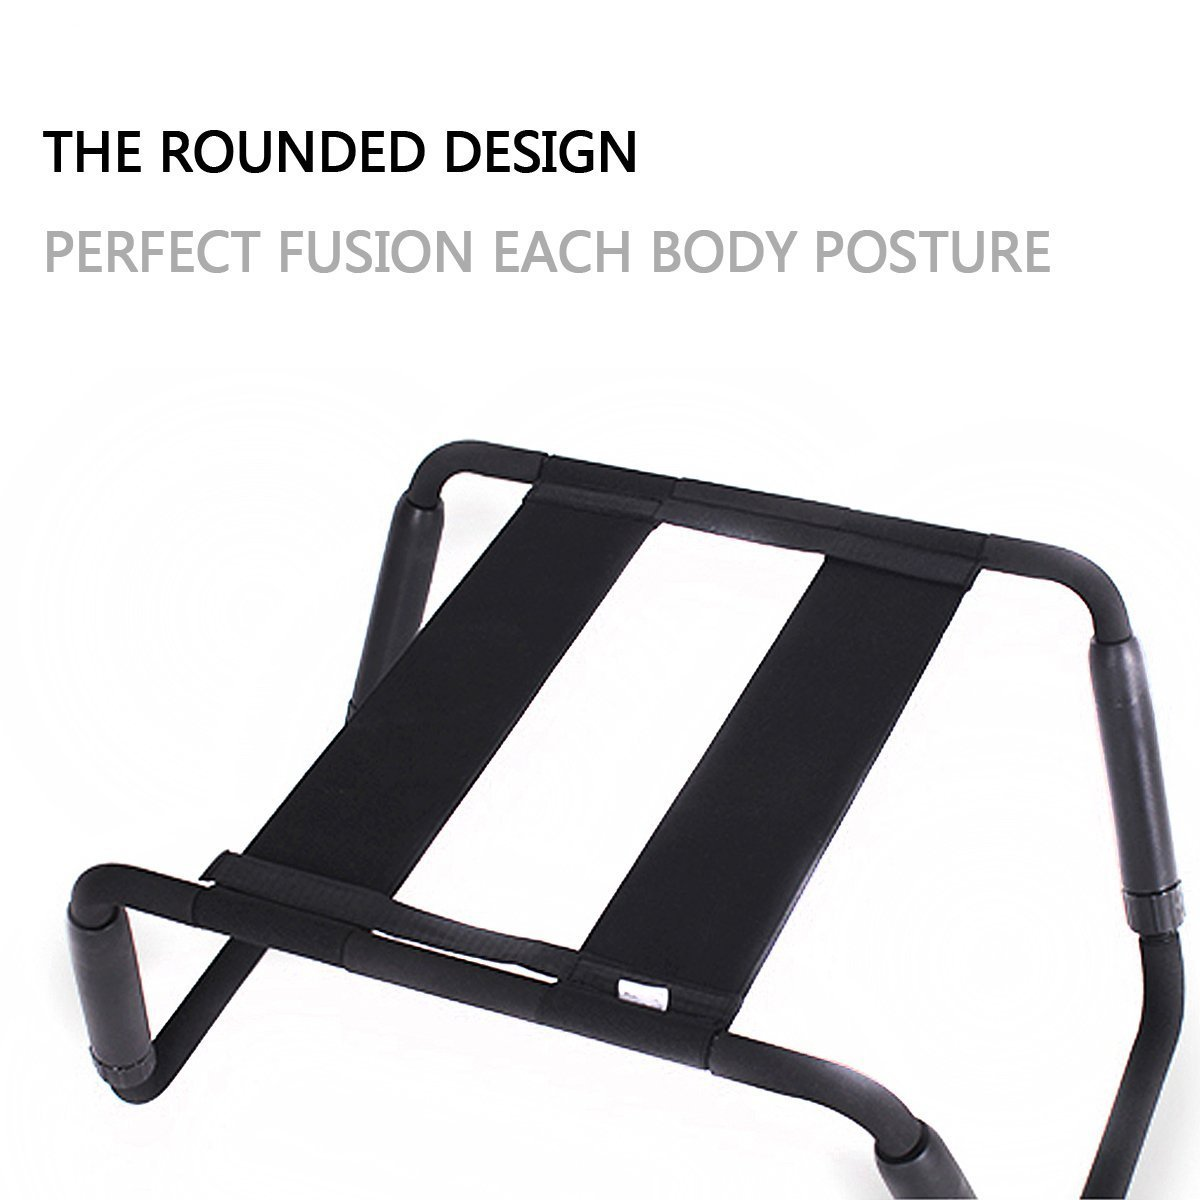 Best Sex Chair Hot Powerful Multifunction Chair Weightless Black Chair Fun Couple Adult Elastic Sex Chair For Couples Free Shipping